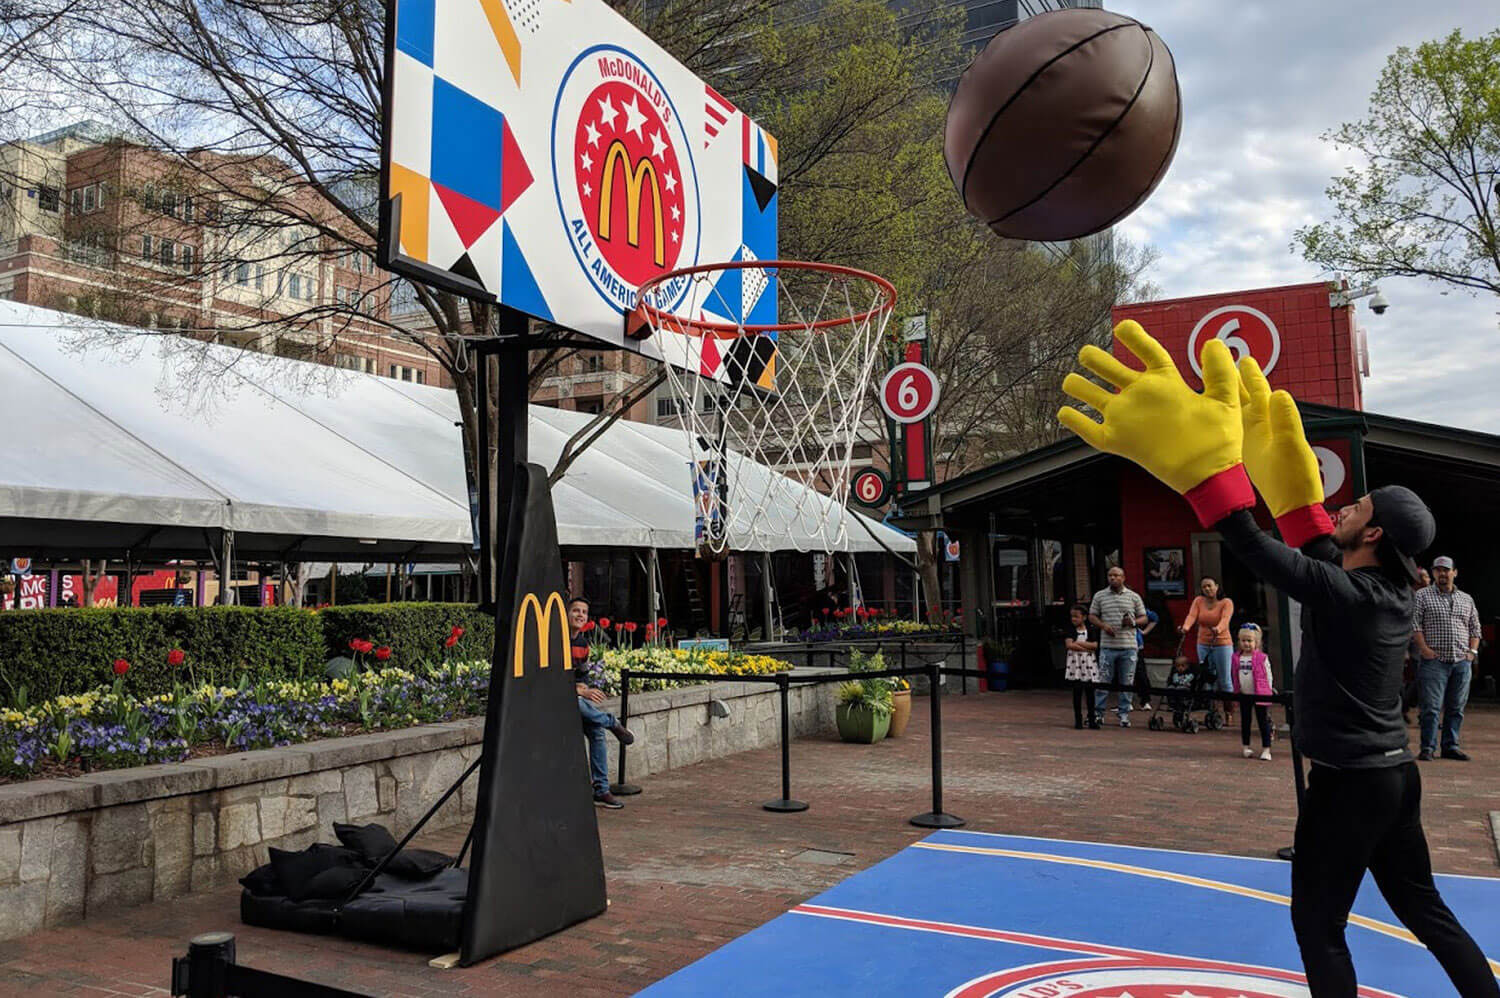 Atlanta Props™ Custom Oversized Props -  Giant Basketball and Hoop for McDonald's Event